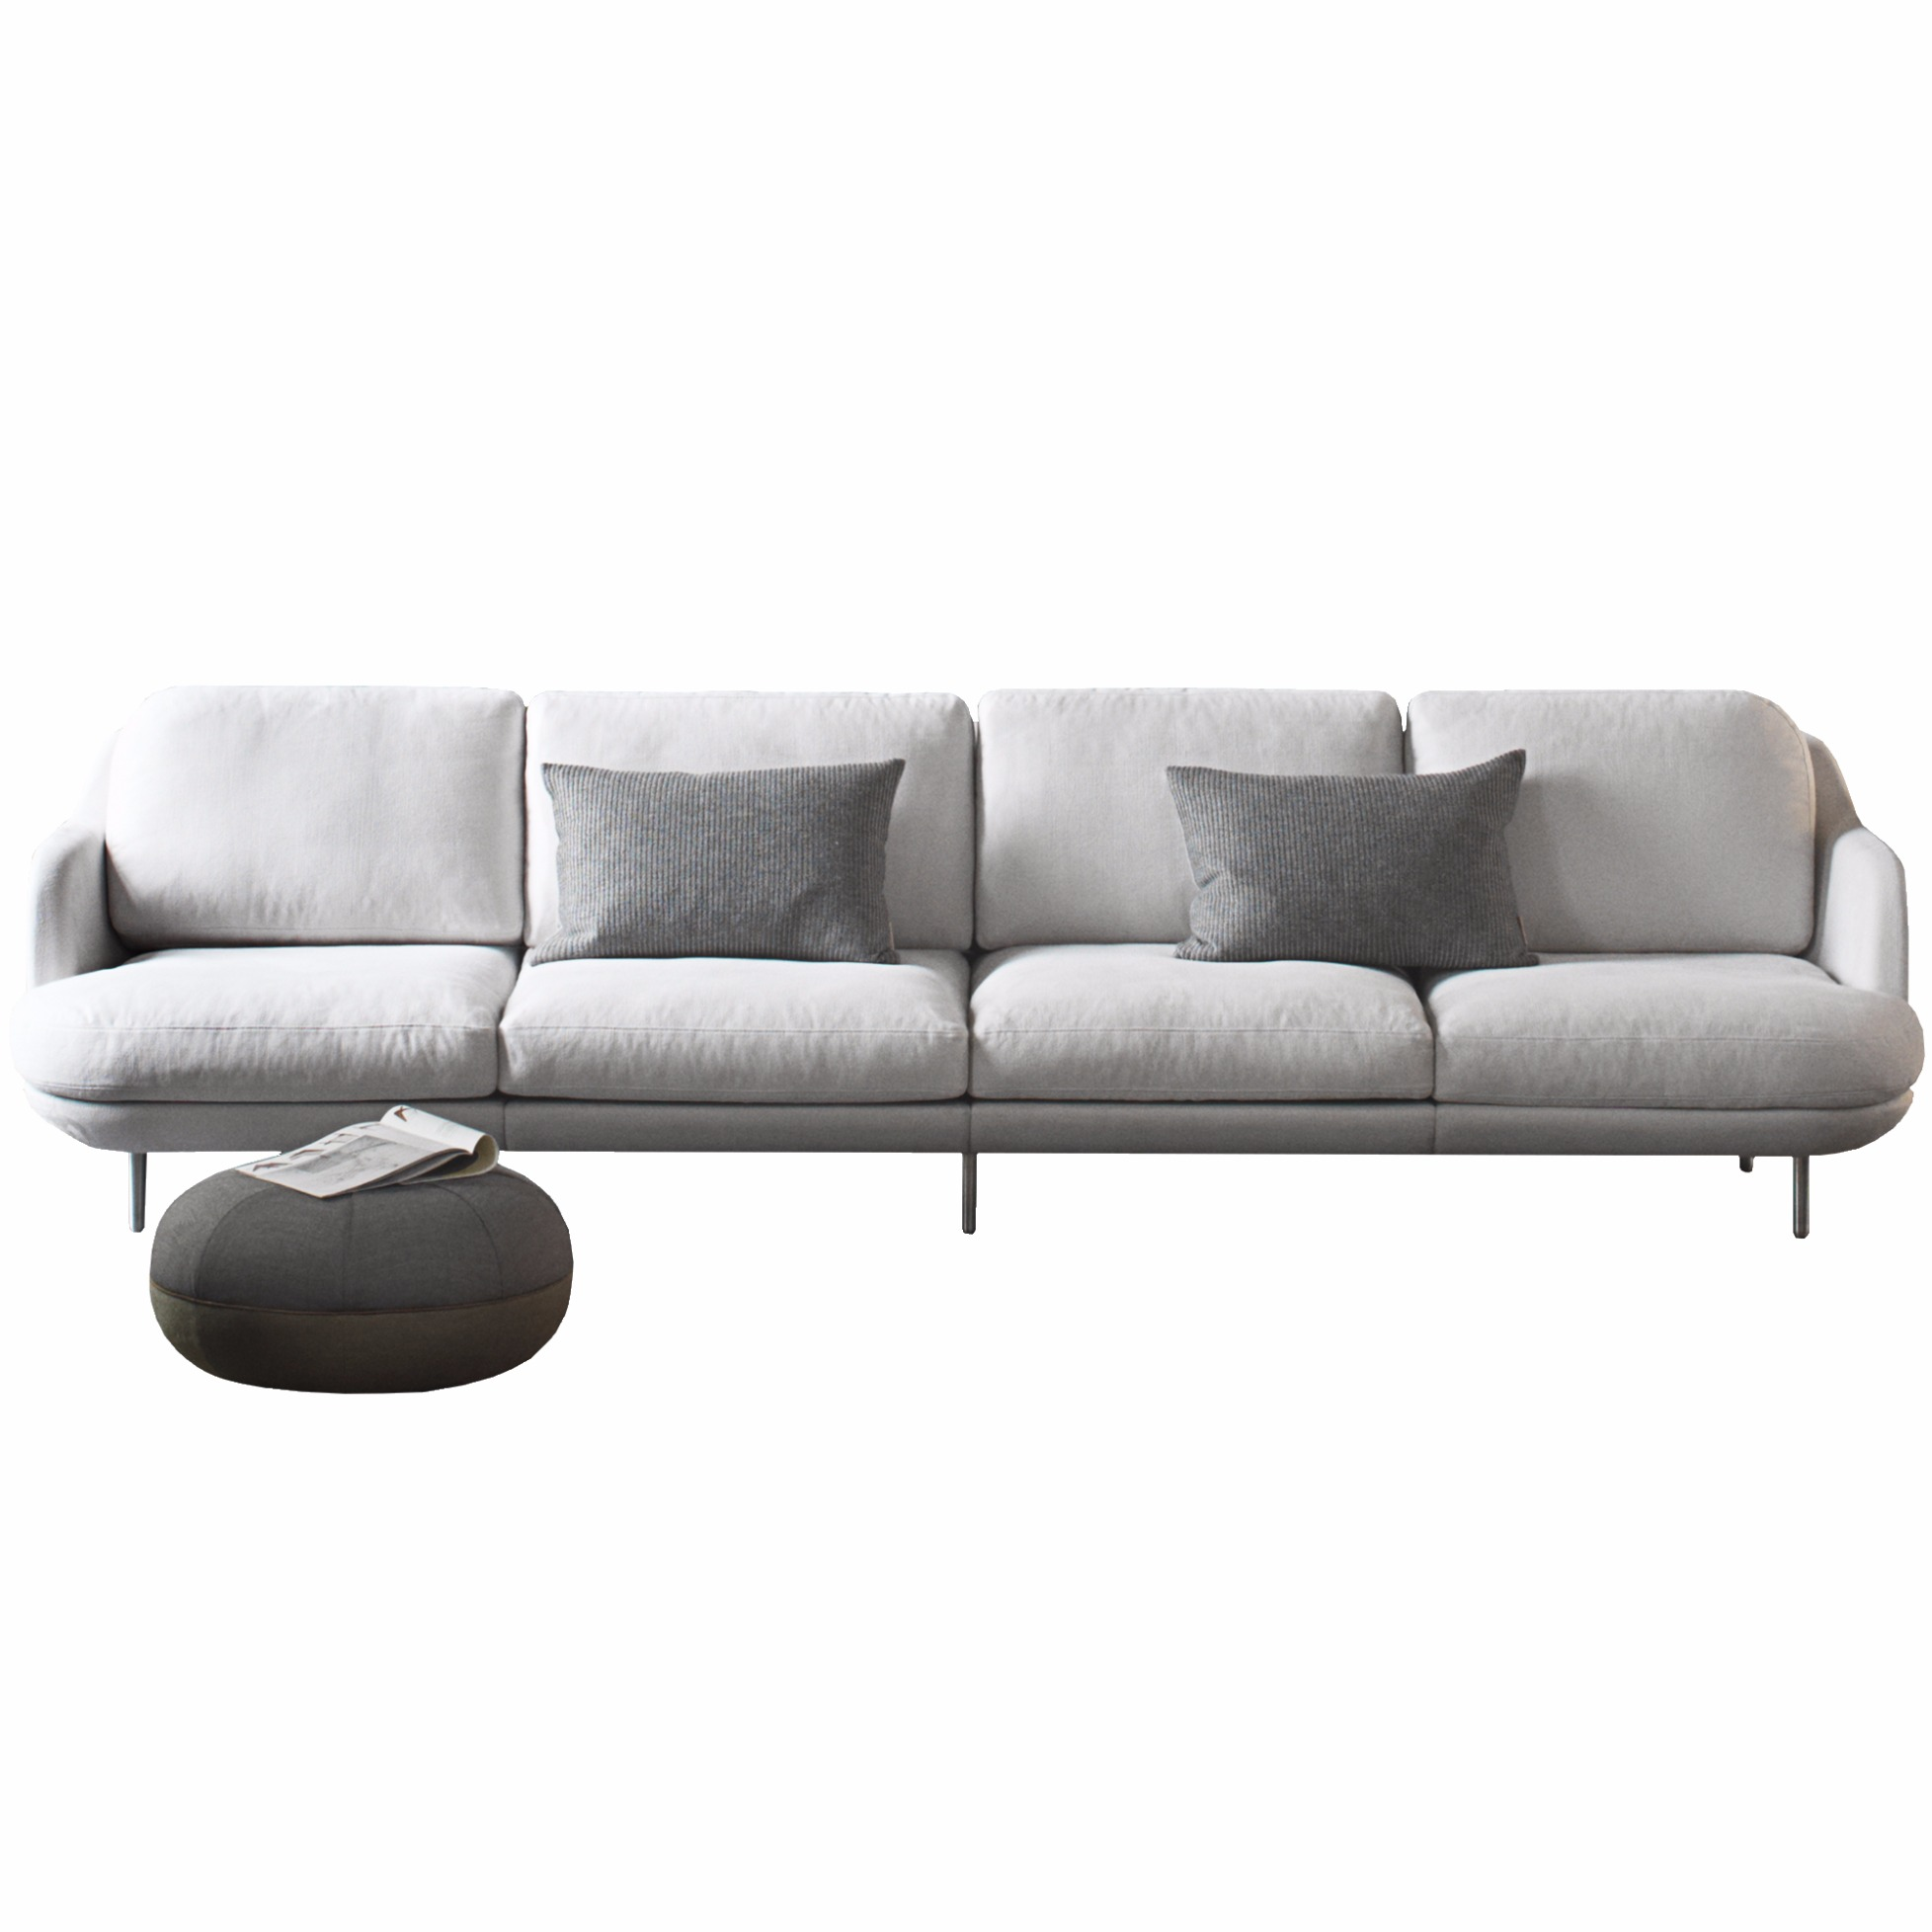 4 sitzer sofa lune von fritz hansen. Black Bedroom Furniture Sets. Home Design Ideas